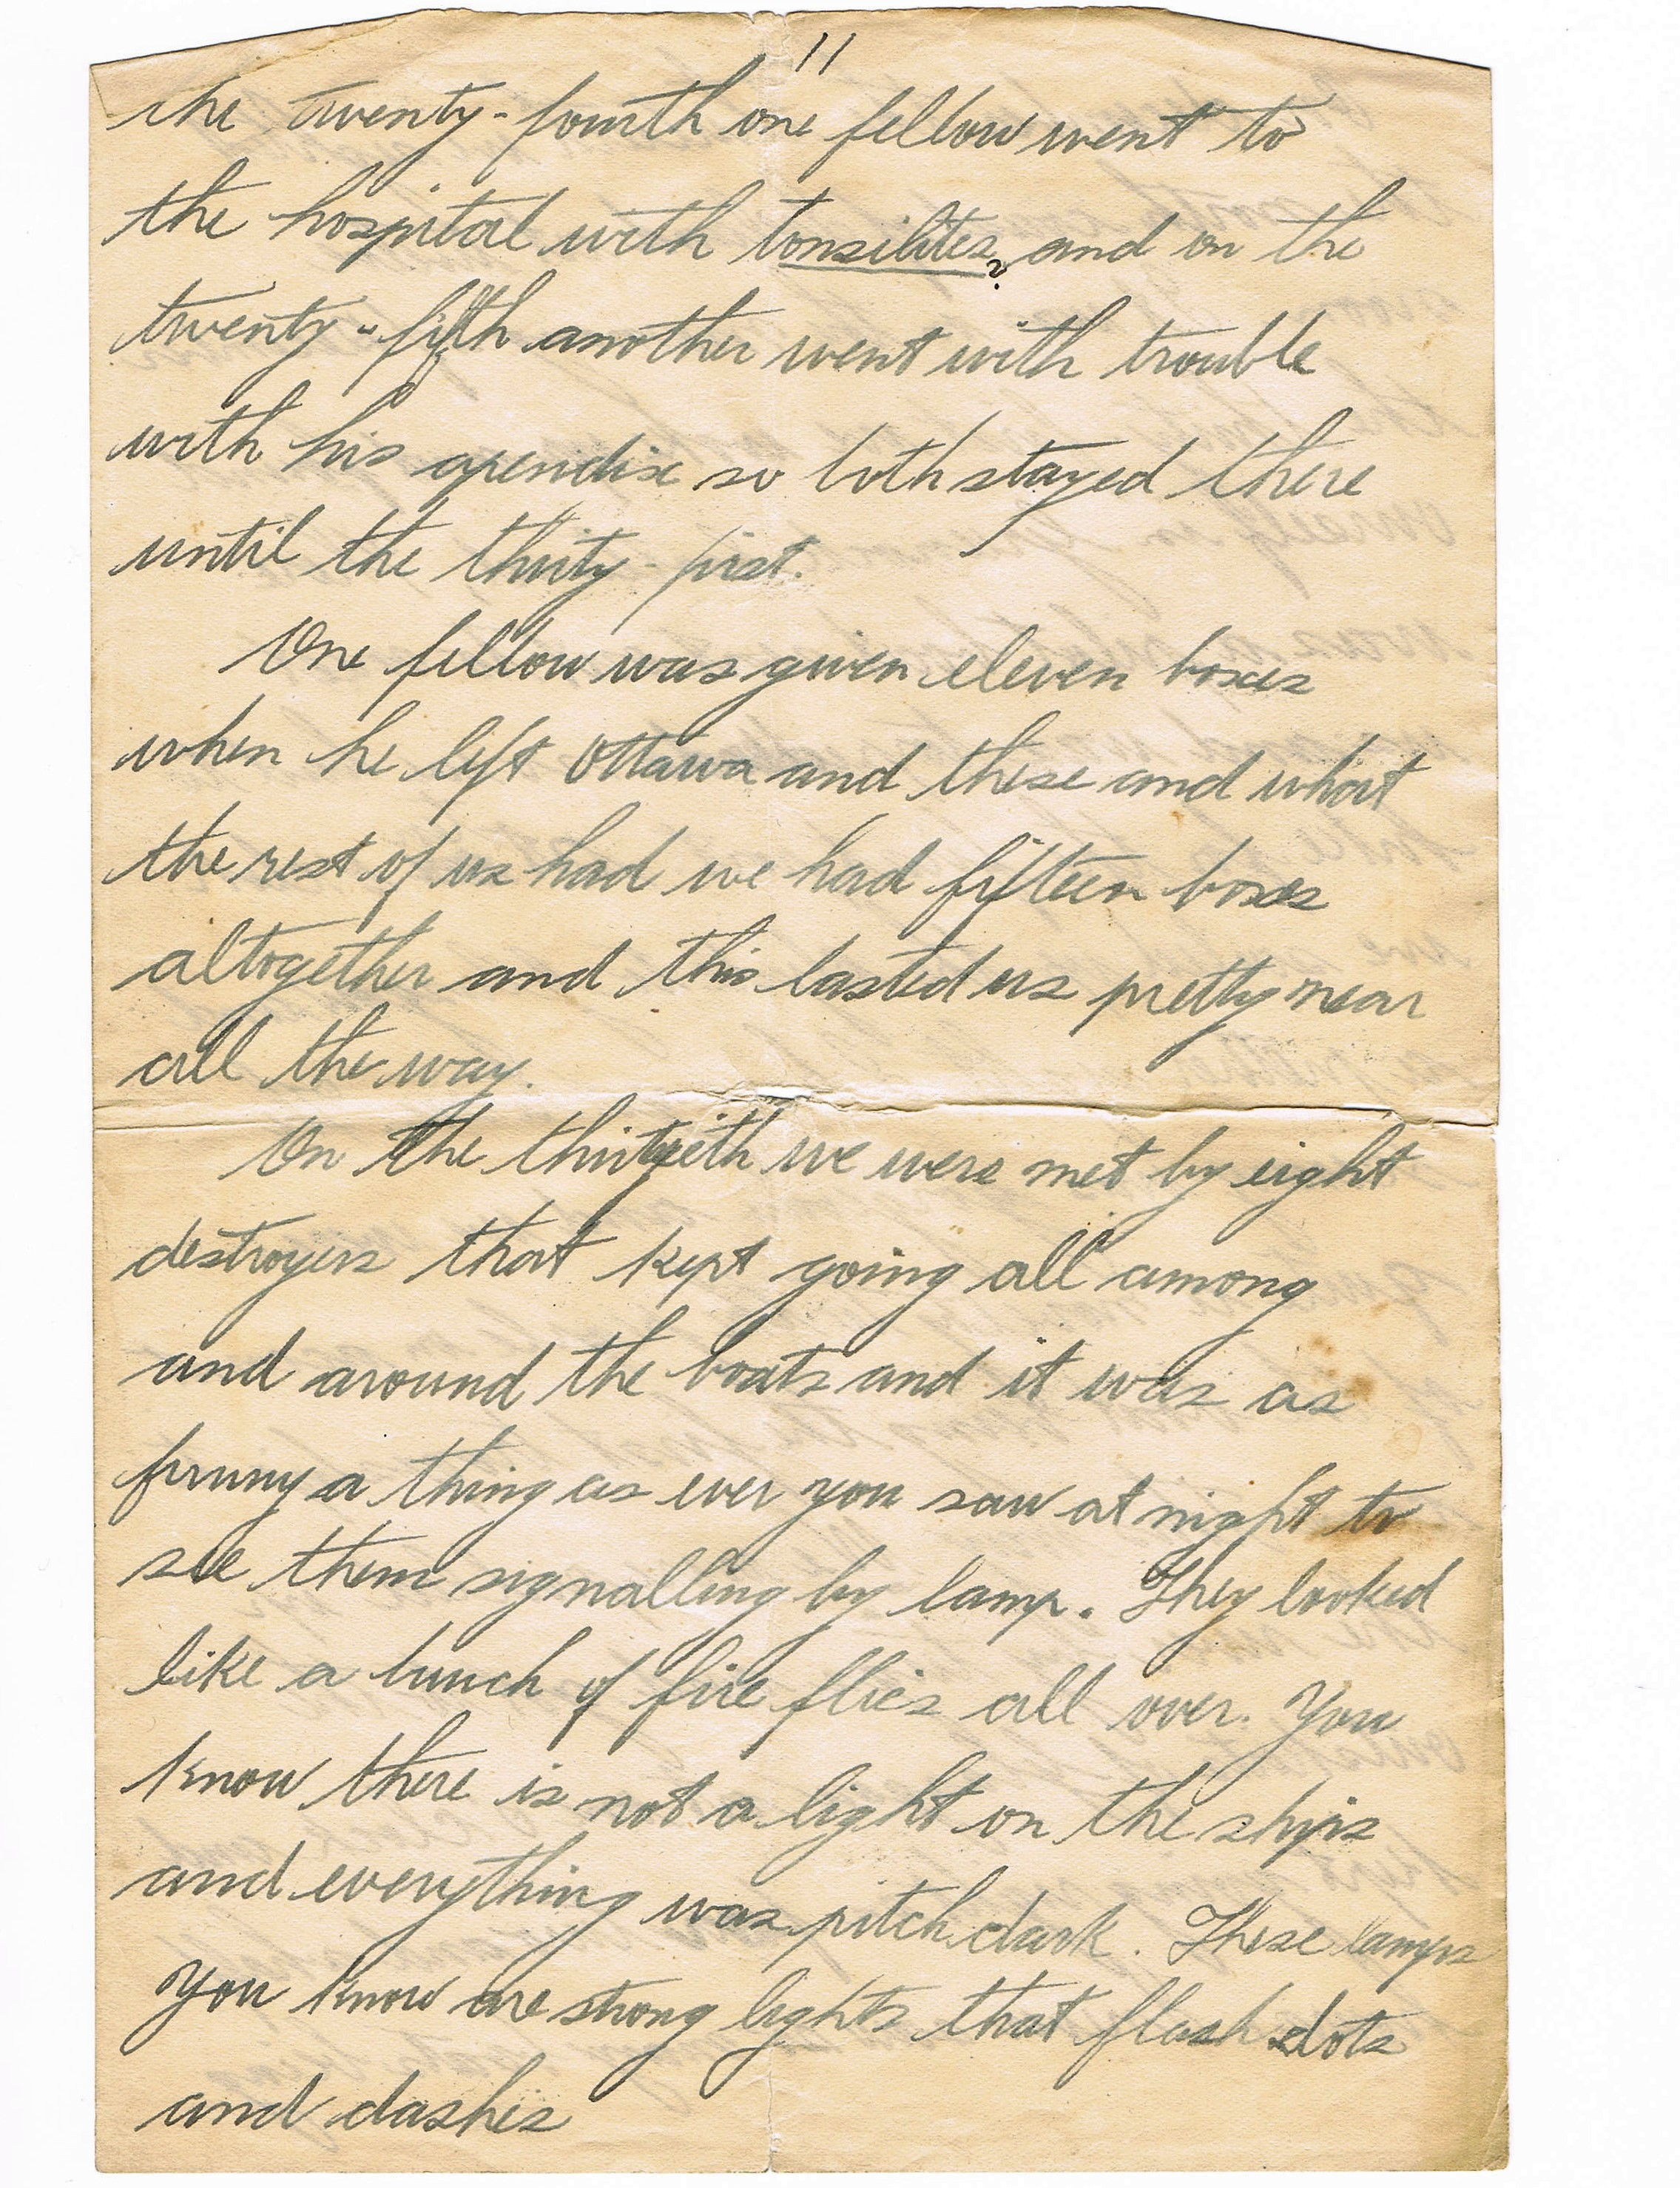 Eleventh page of handwritten letter